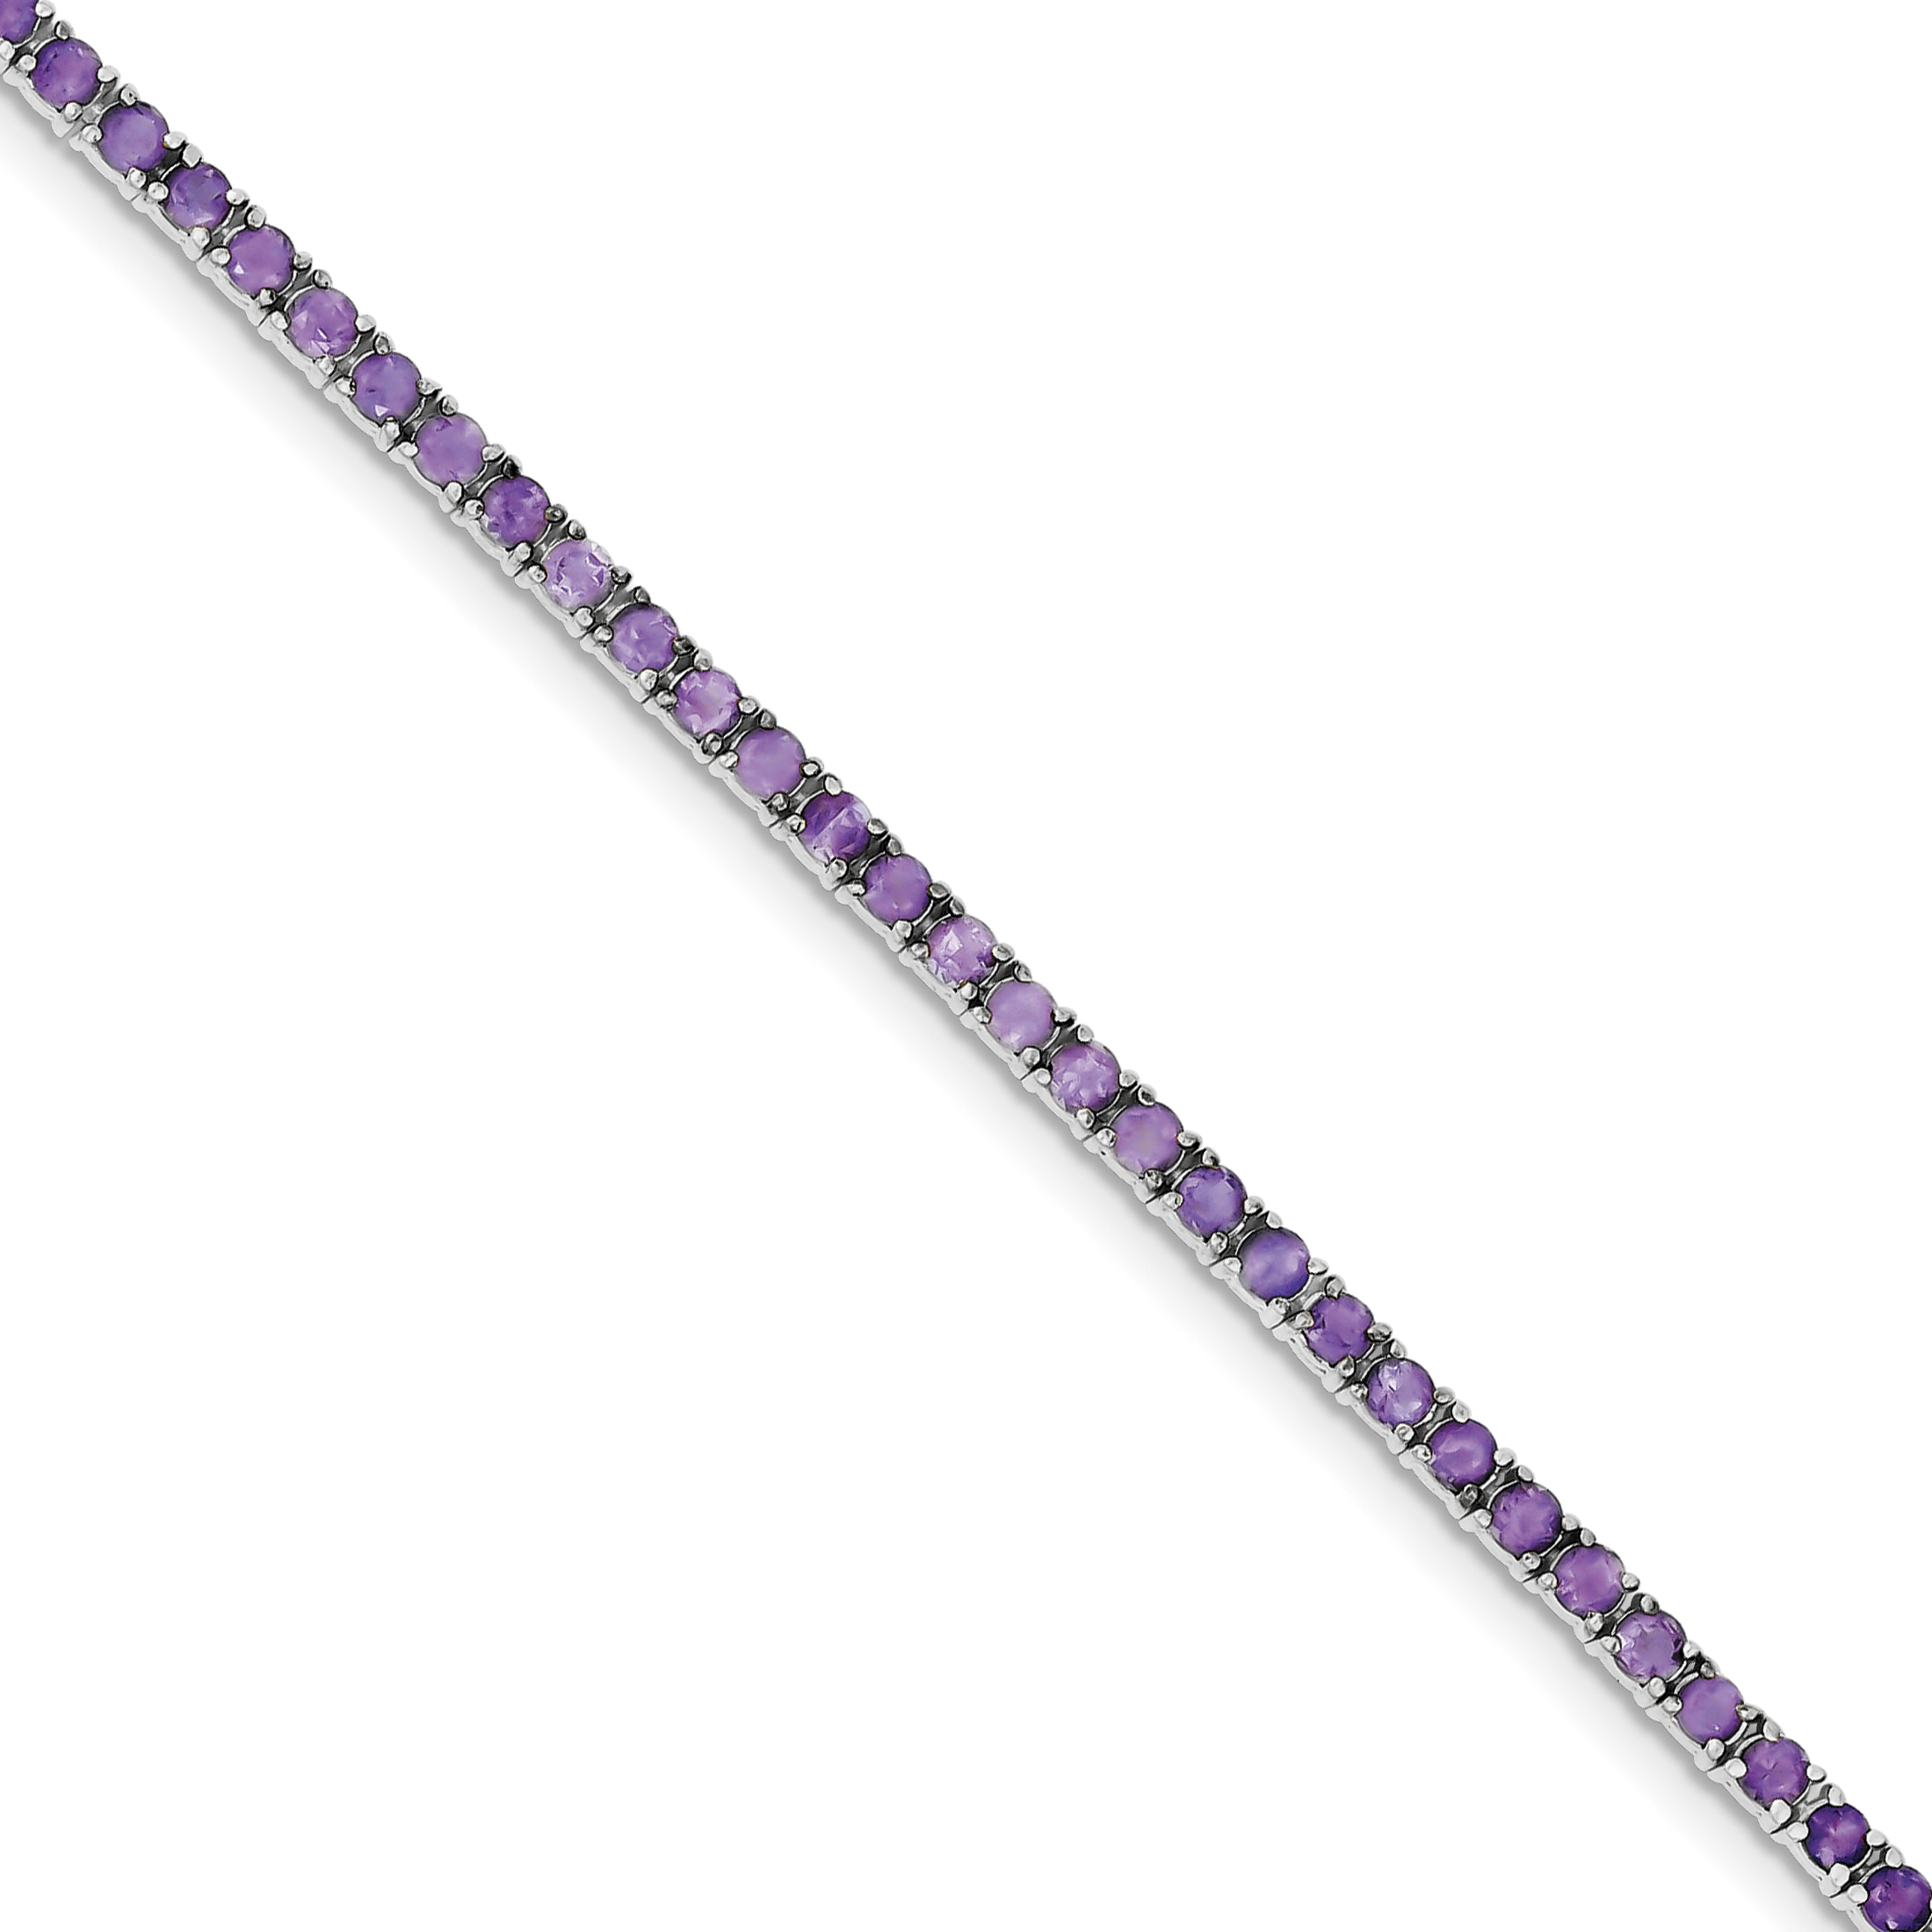 925 Sterling Silver Rhodium-plated Amethyst Bracelet by